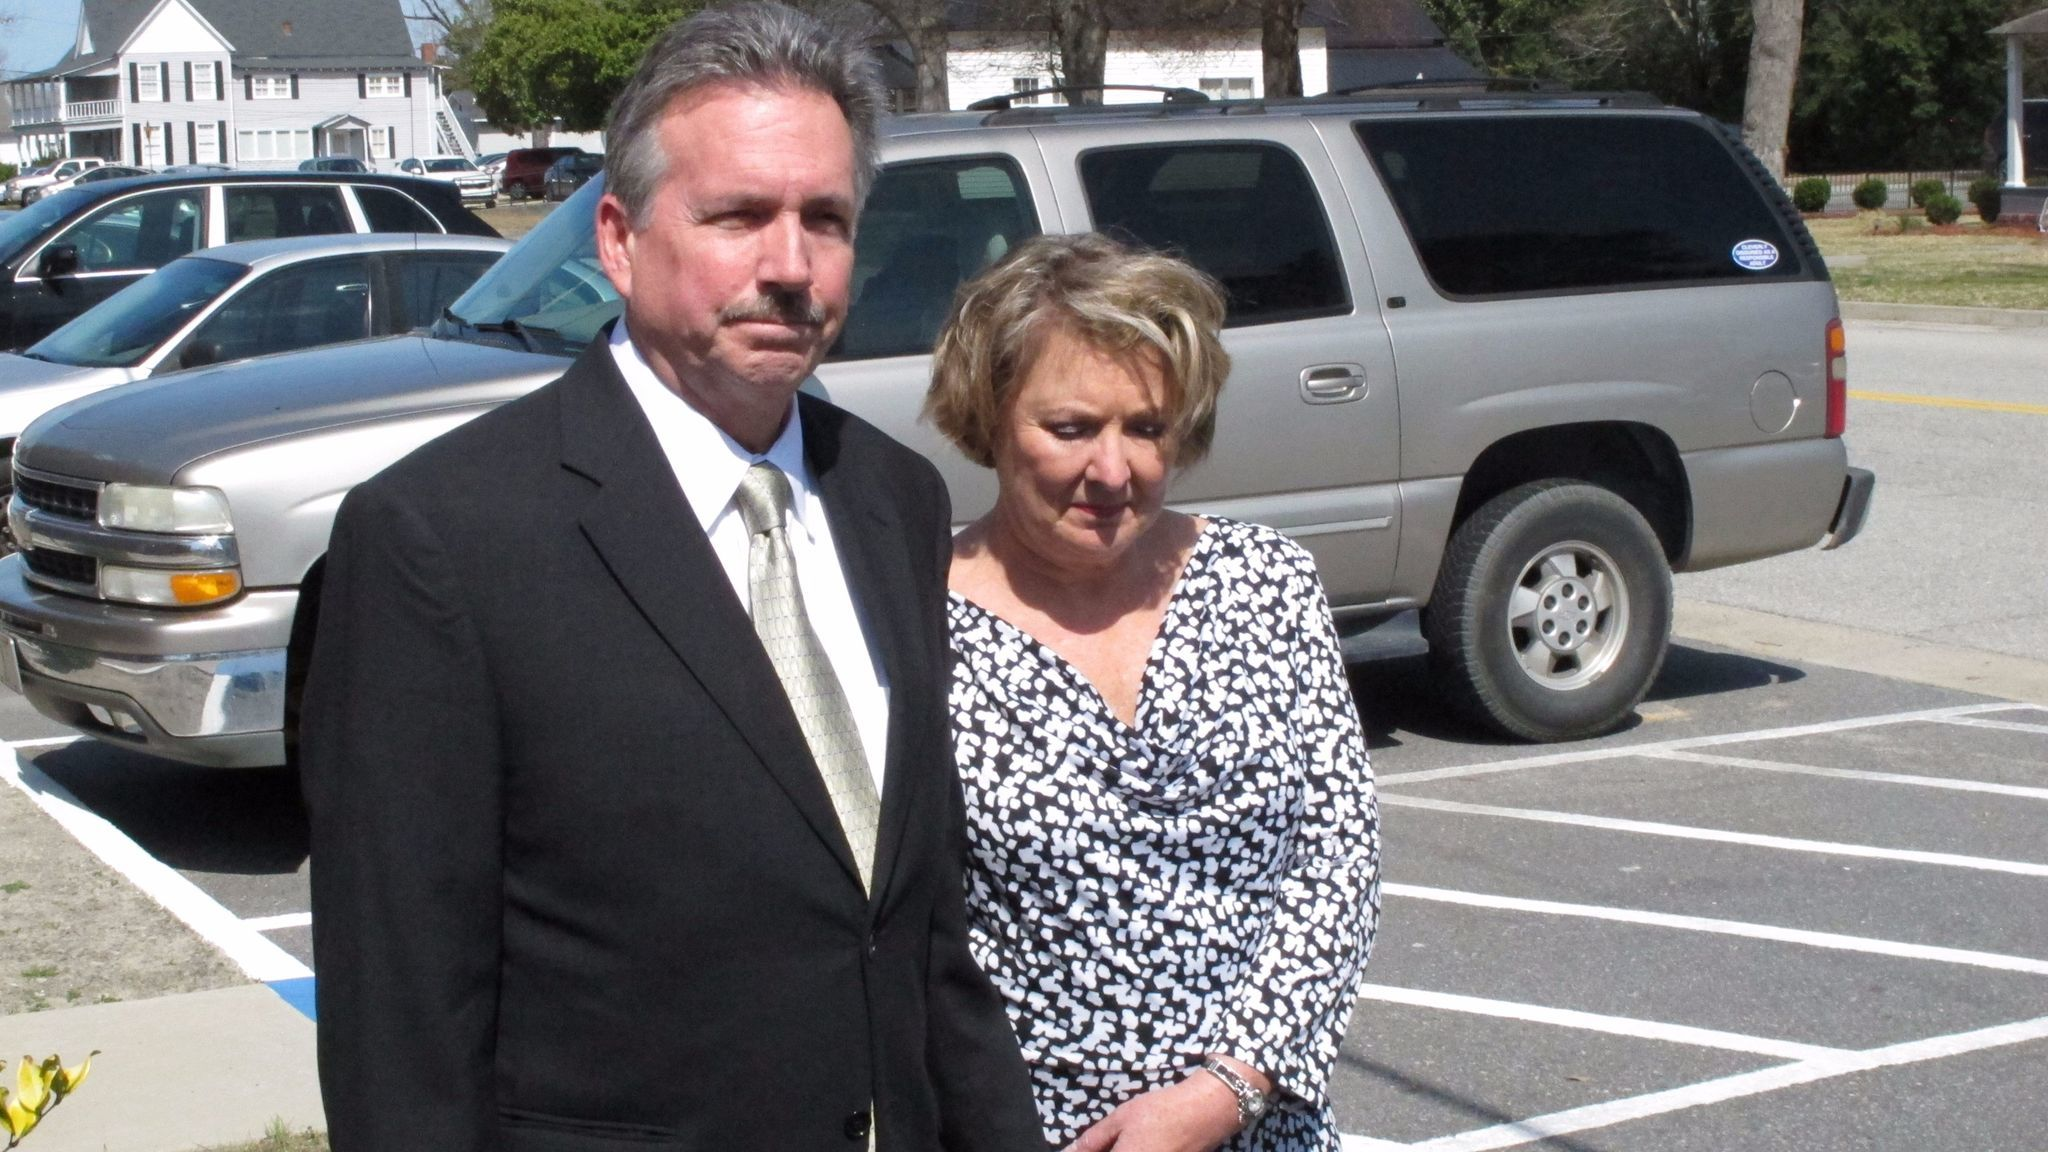 Richard and Elizabeth Jones, whose daughter, Sarah, was killed by a train on a Georgia movie set in 2014, met with reporters outside the Wayne County Courthouse in Jesup, Ga., the following year.